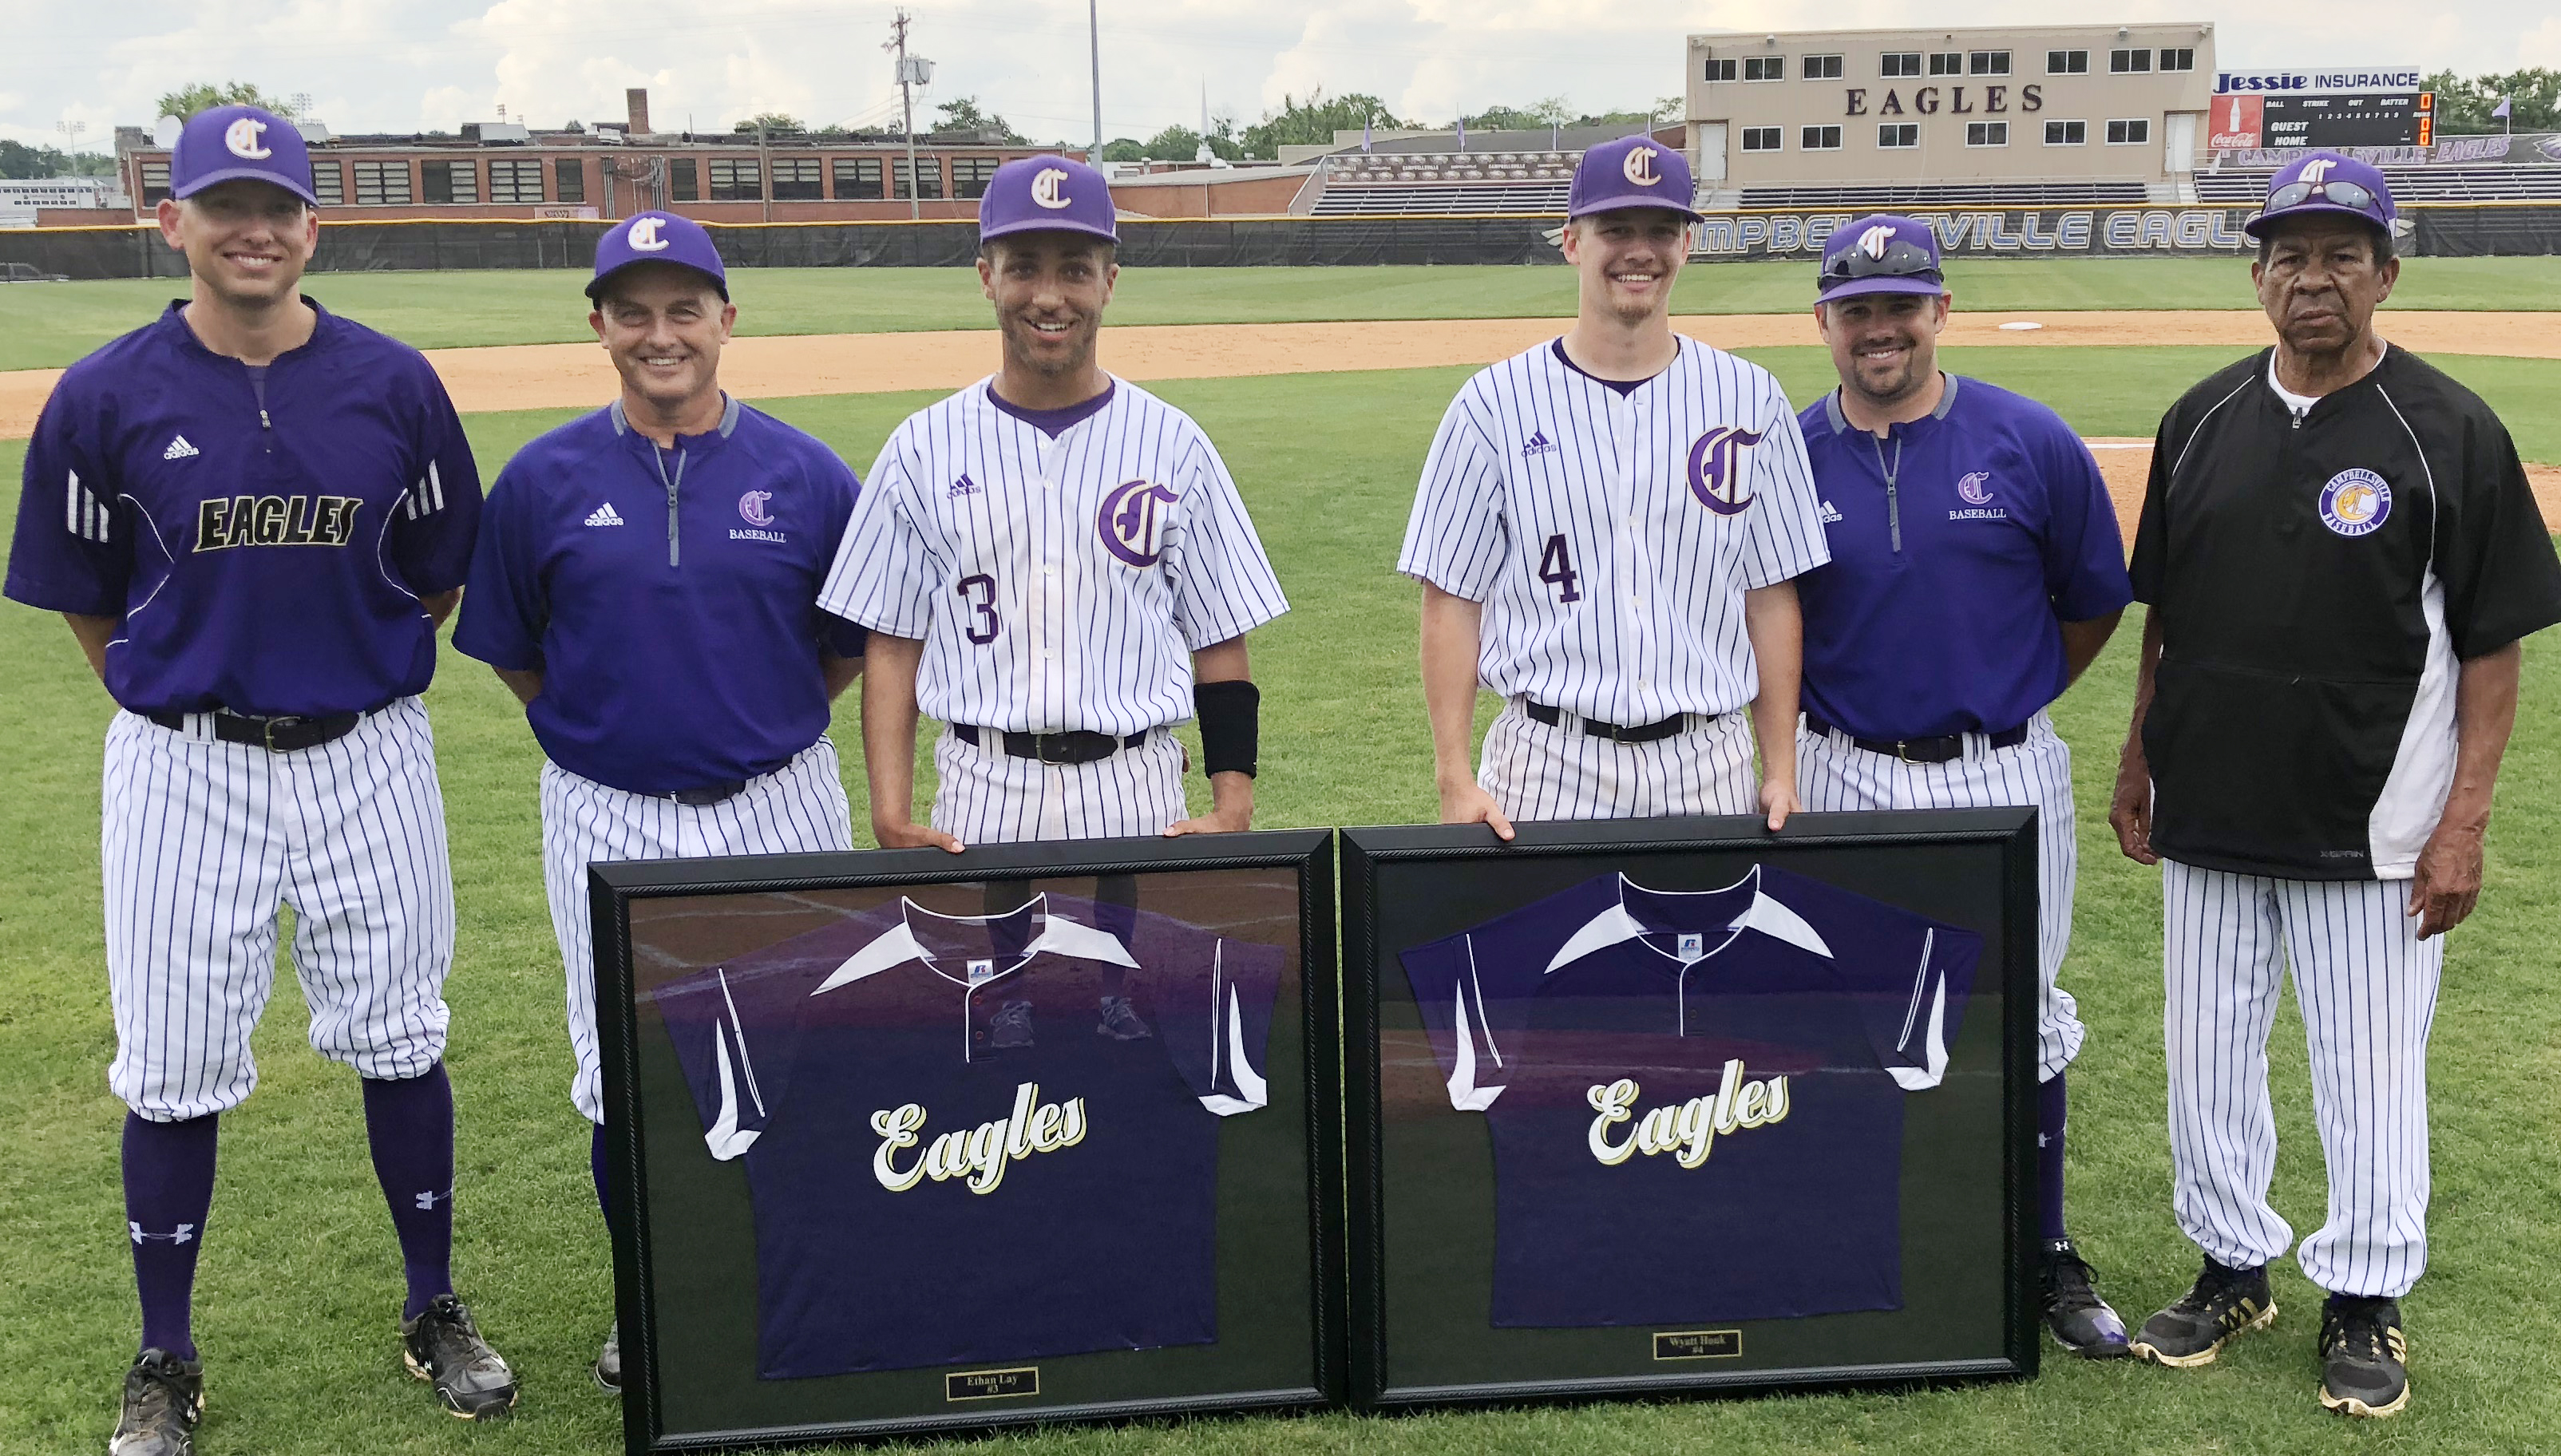 CHS seniors Ethan Lay and Wyatt Houk, third and fourth from left, are honored for their dedication to the Eagle baseball program. They are pictured with, from left, assistant coaches Zach Lewis and Lynn Kearney, head coach Blake Milby and assistant coach Phil Gowdy.